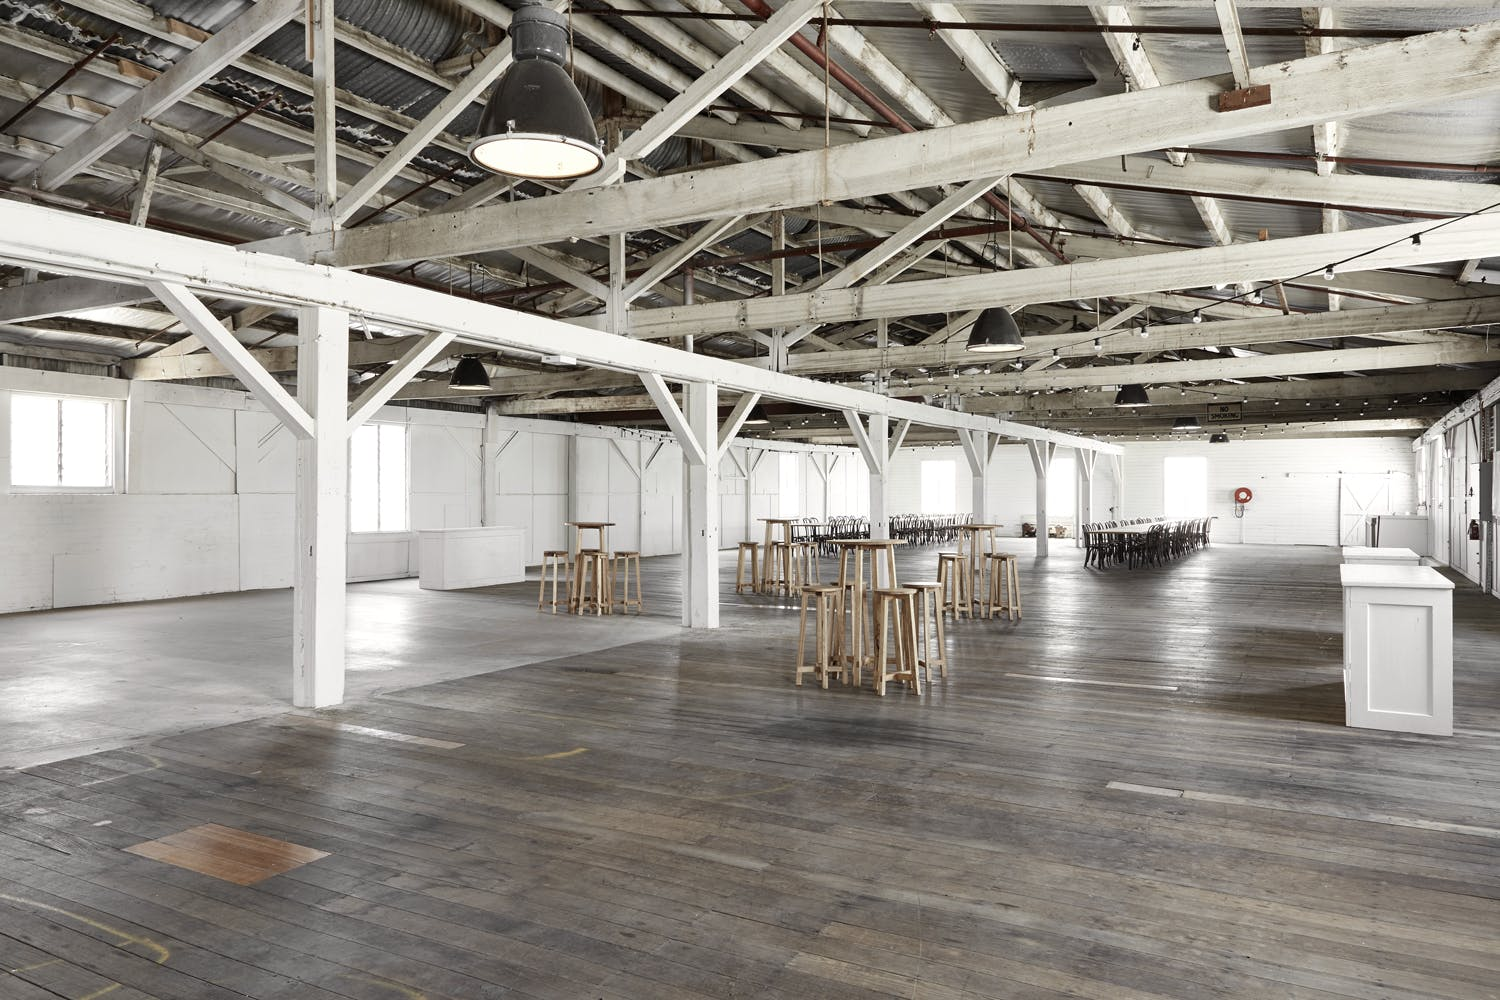 Warehouse 2, multi-use area at Gather & Tailor warehouse 2, image 4